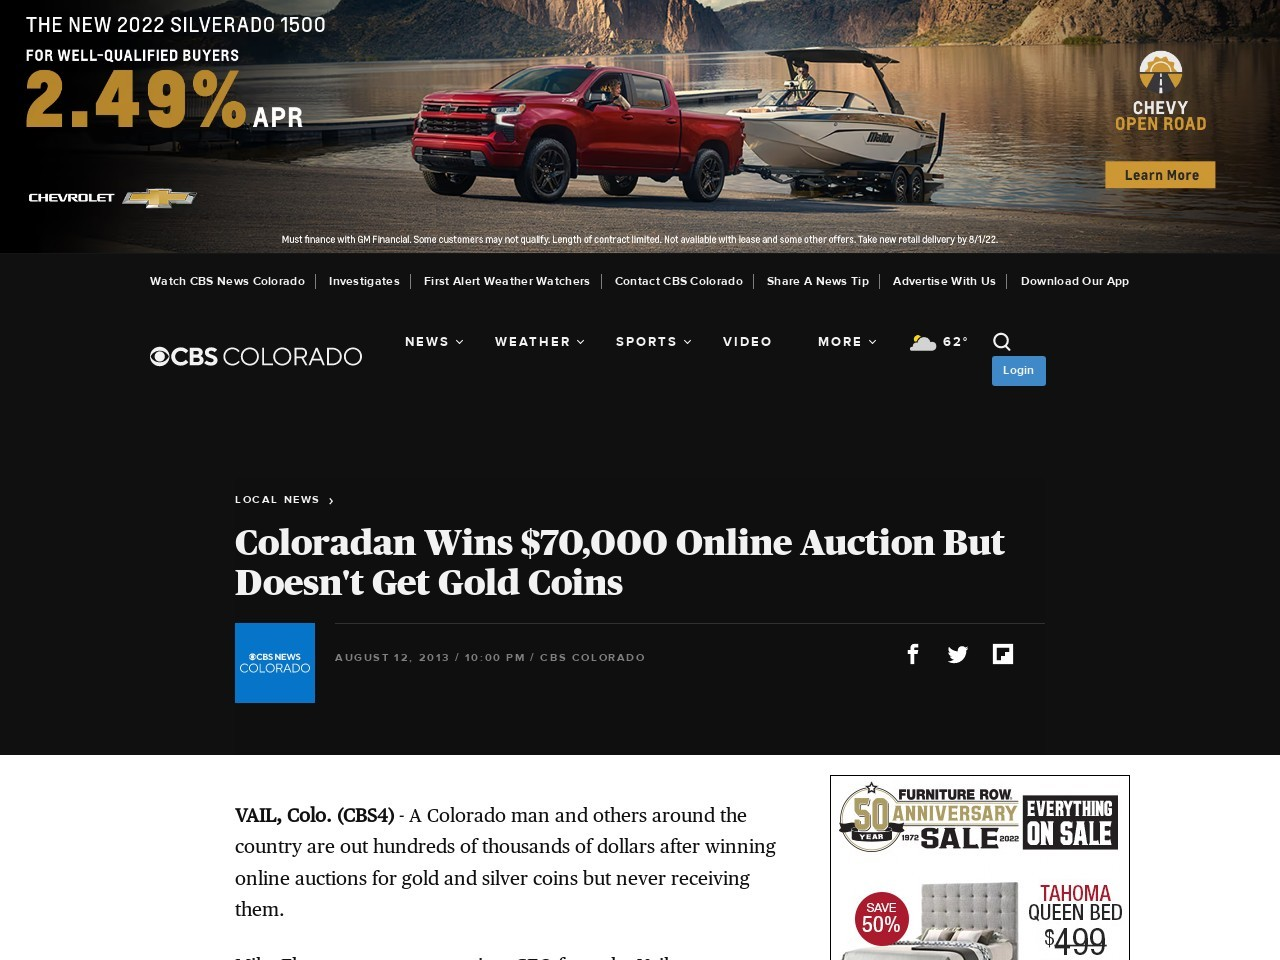 Coloradan Wins $70000 Online Auction But Doesn't Get Gold Coins